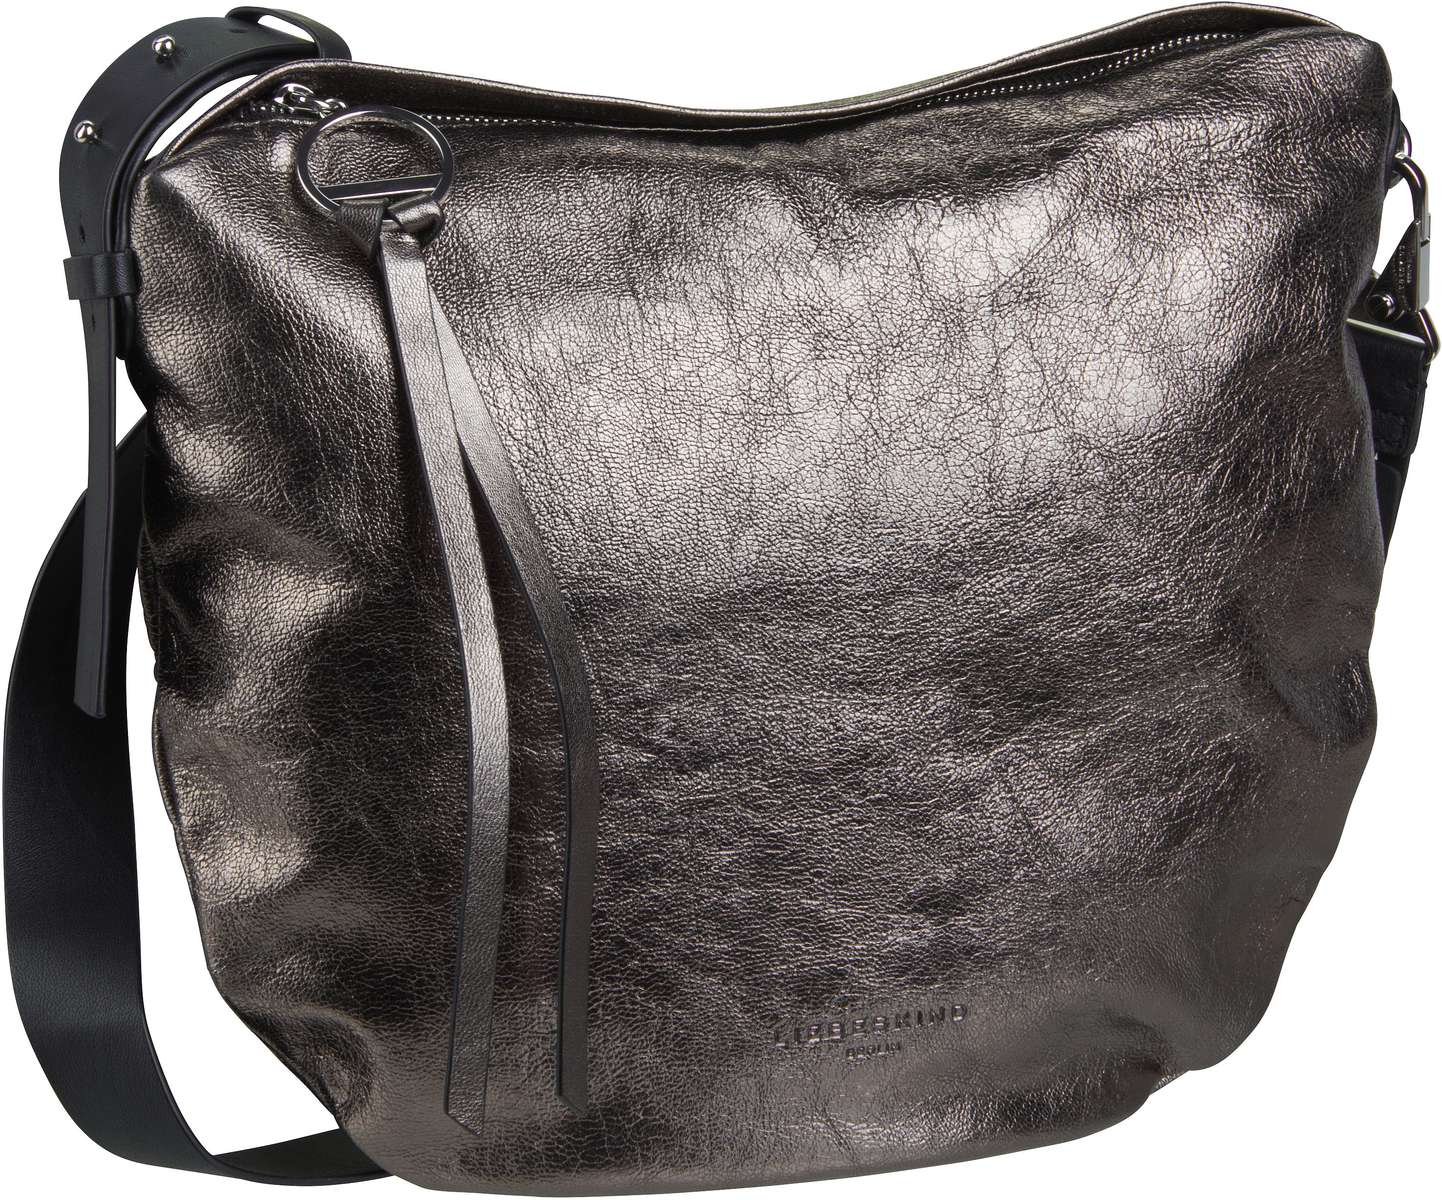 Berlin Umhängetasche Dive Bag 2 Metallic Crossbody M Warm Silver